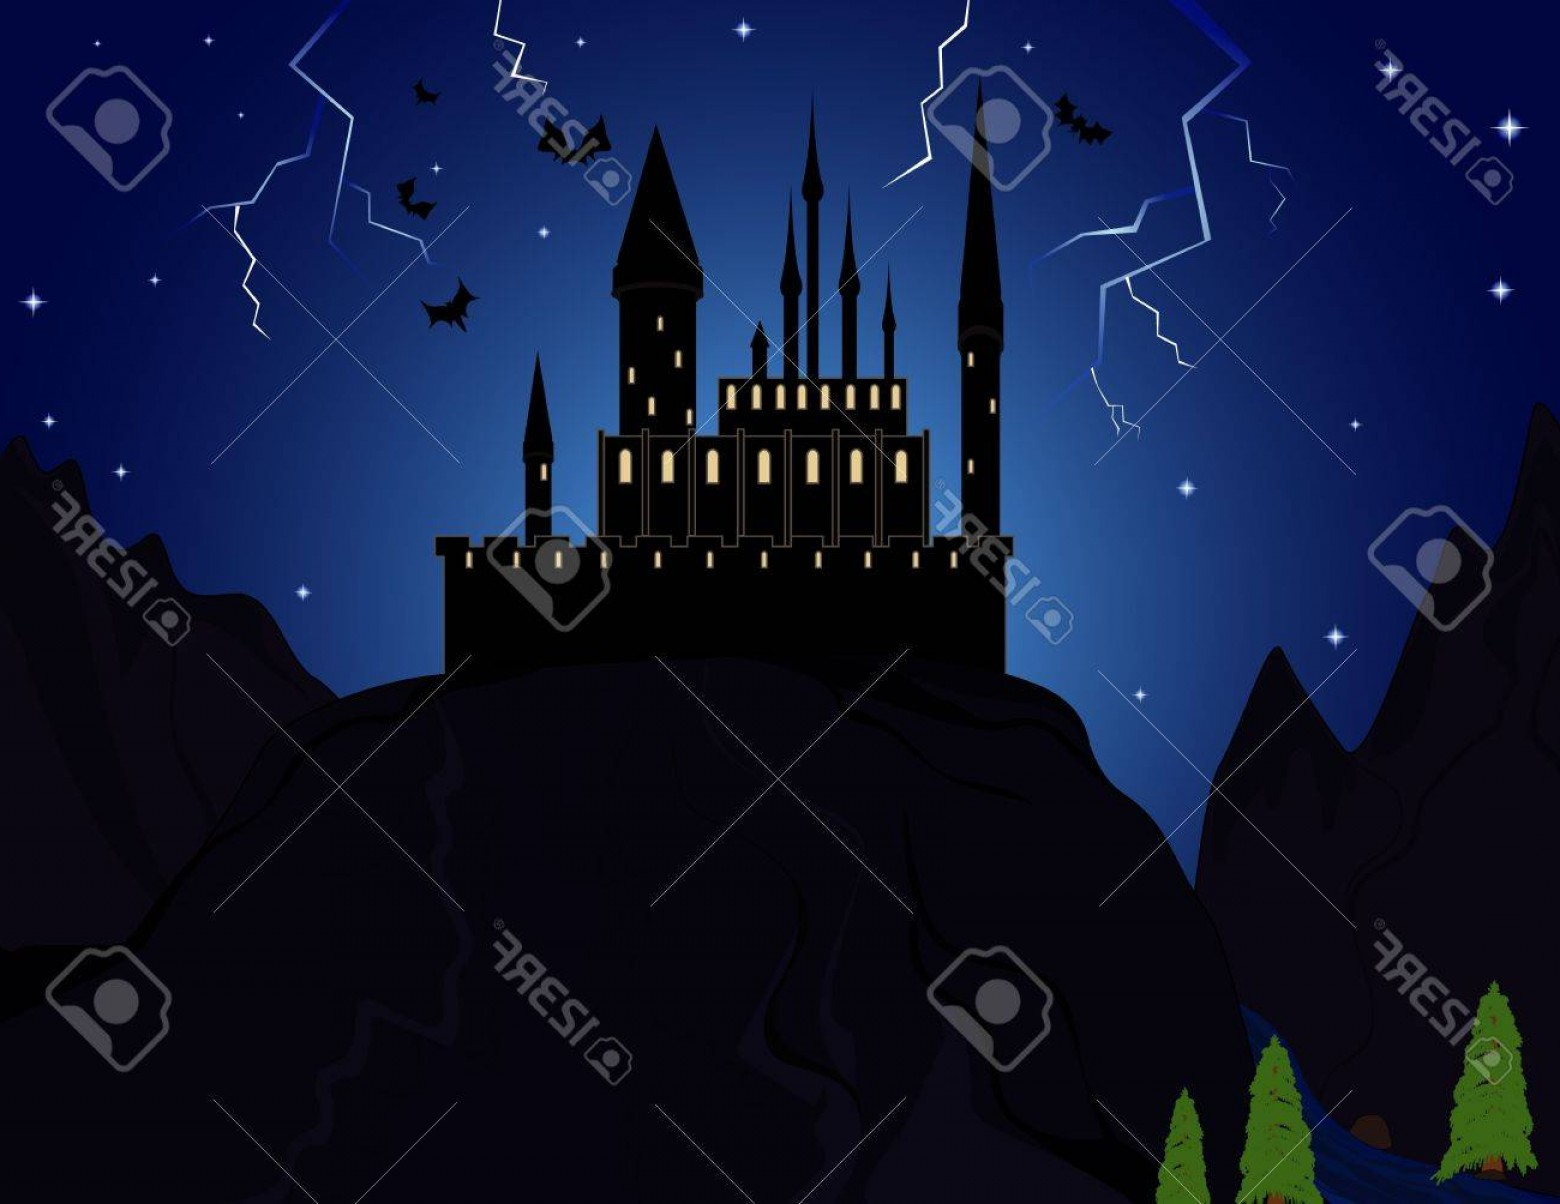 Vectors Fortress Flying: Photovampire Castle In The Mountains With Flying Bats